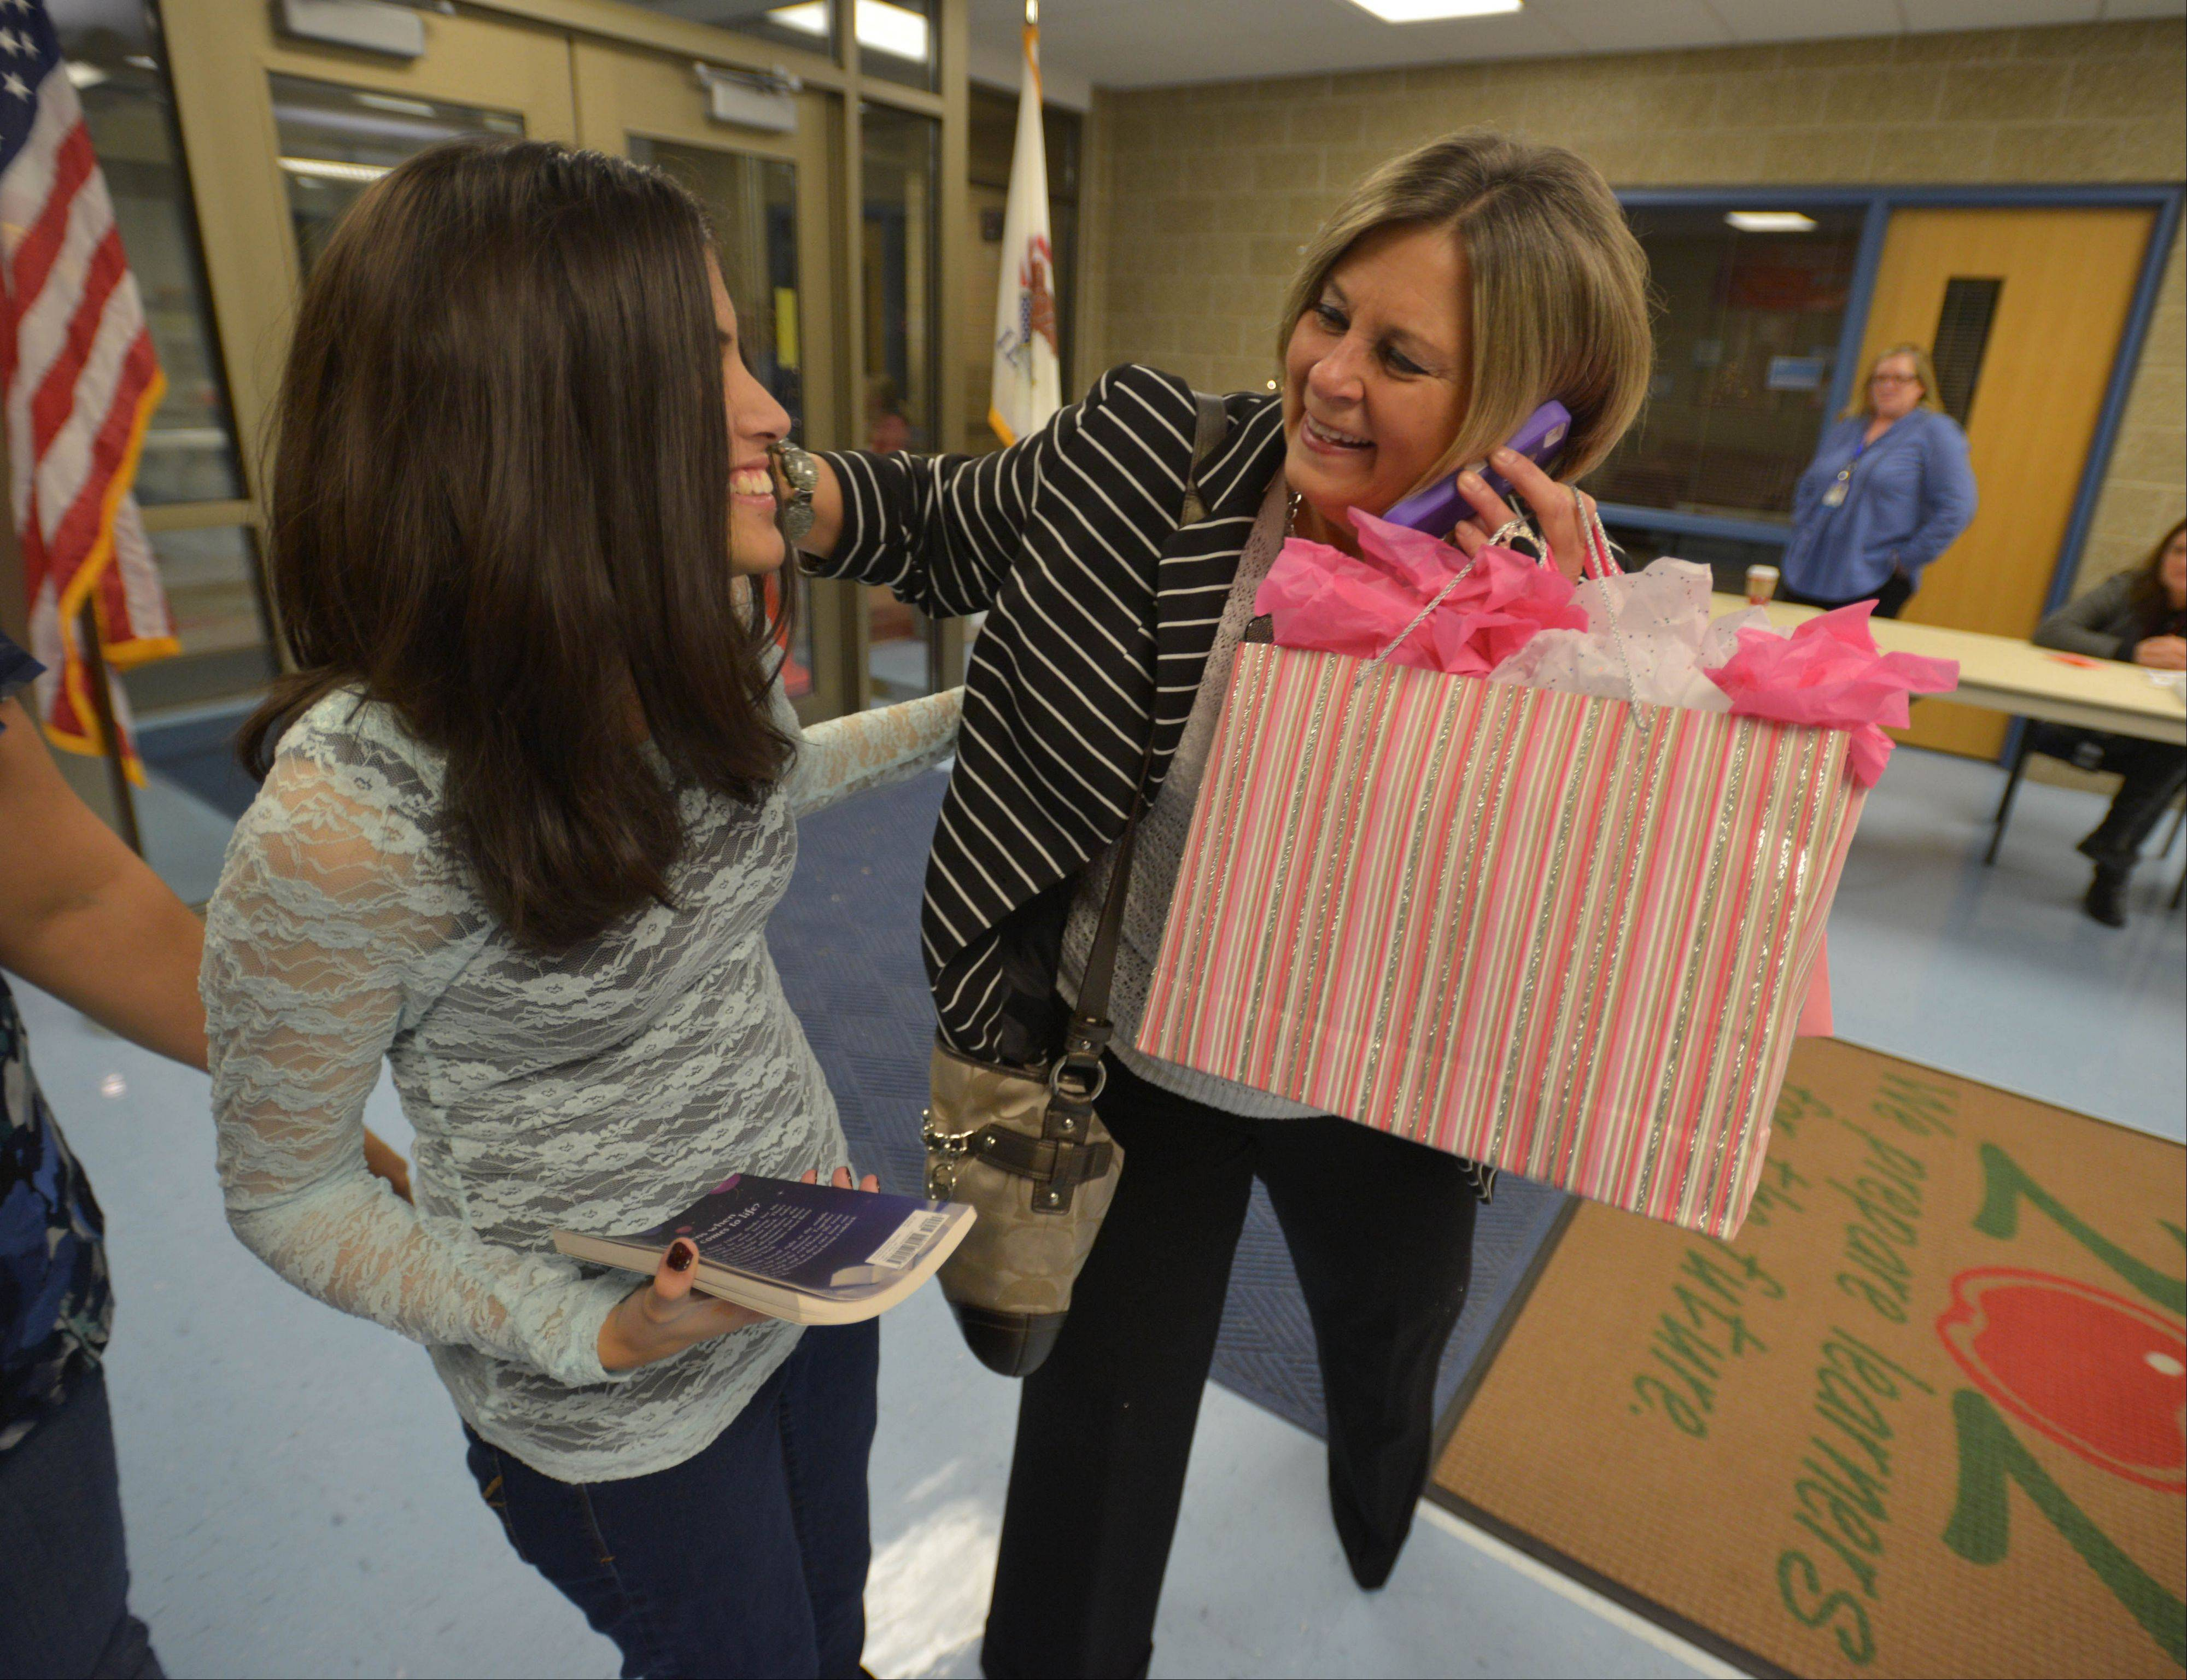 Make-A-Wish volunteer wish-granter Cindy Kepner arrives with gifts for Ravina Thakkar, as the girl celebrates her 14th birthday and the publication of her first novel.